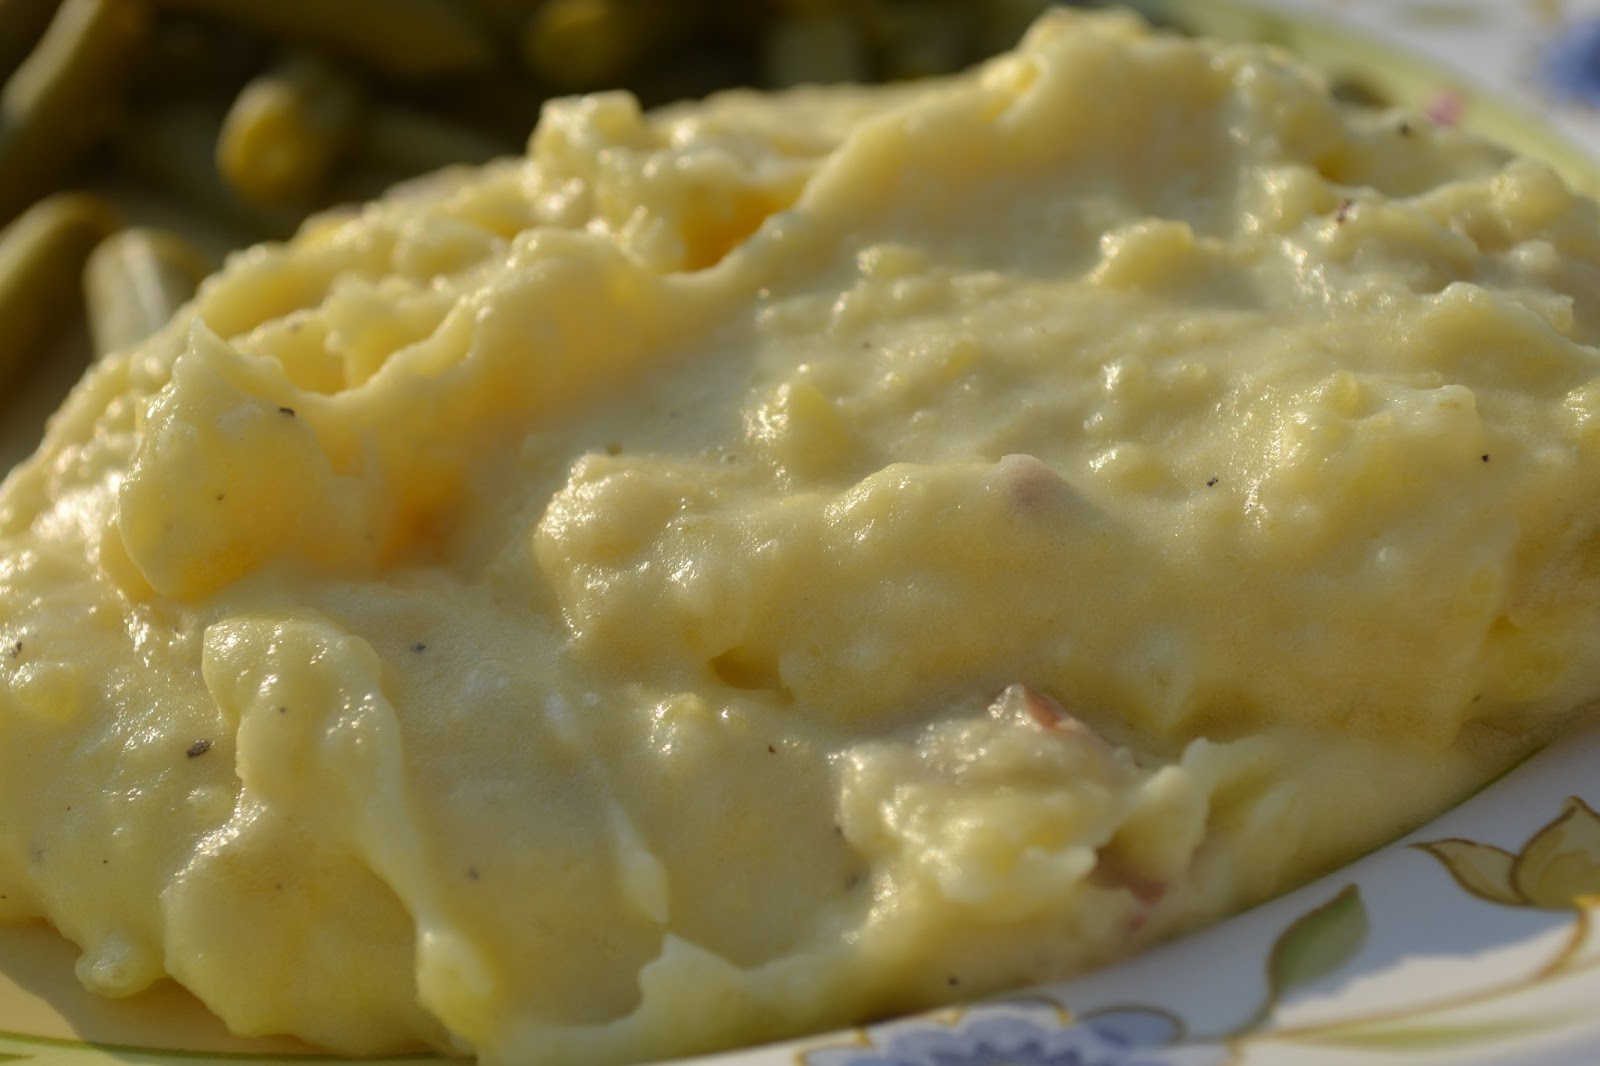 Making Miracles: Creamy, Cheesy Mashed Potatoes